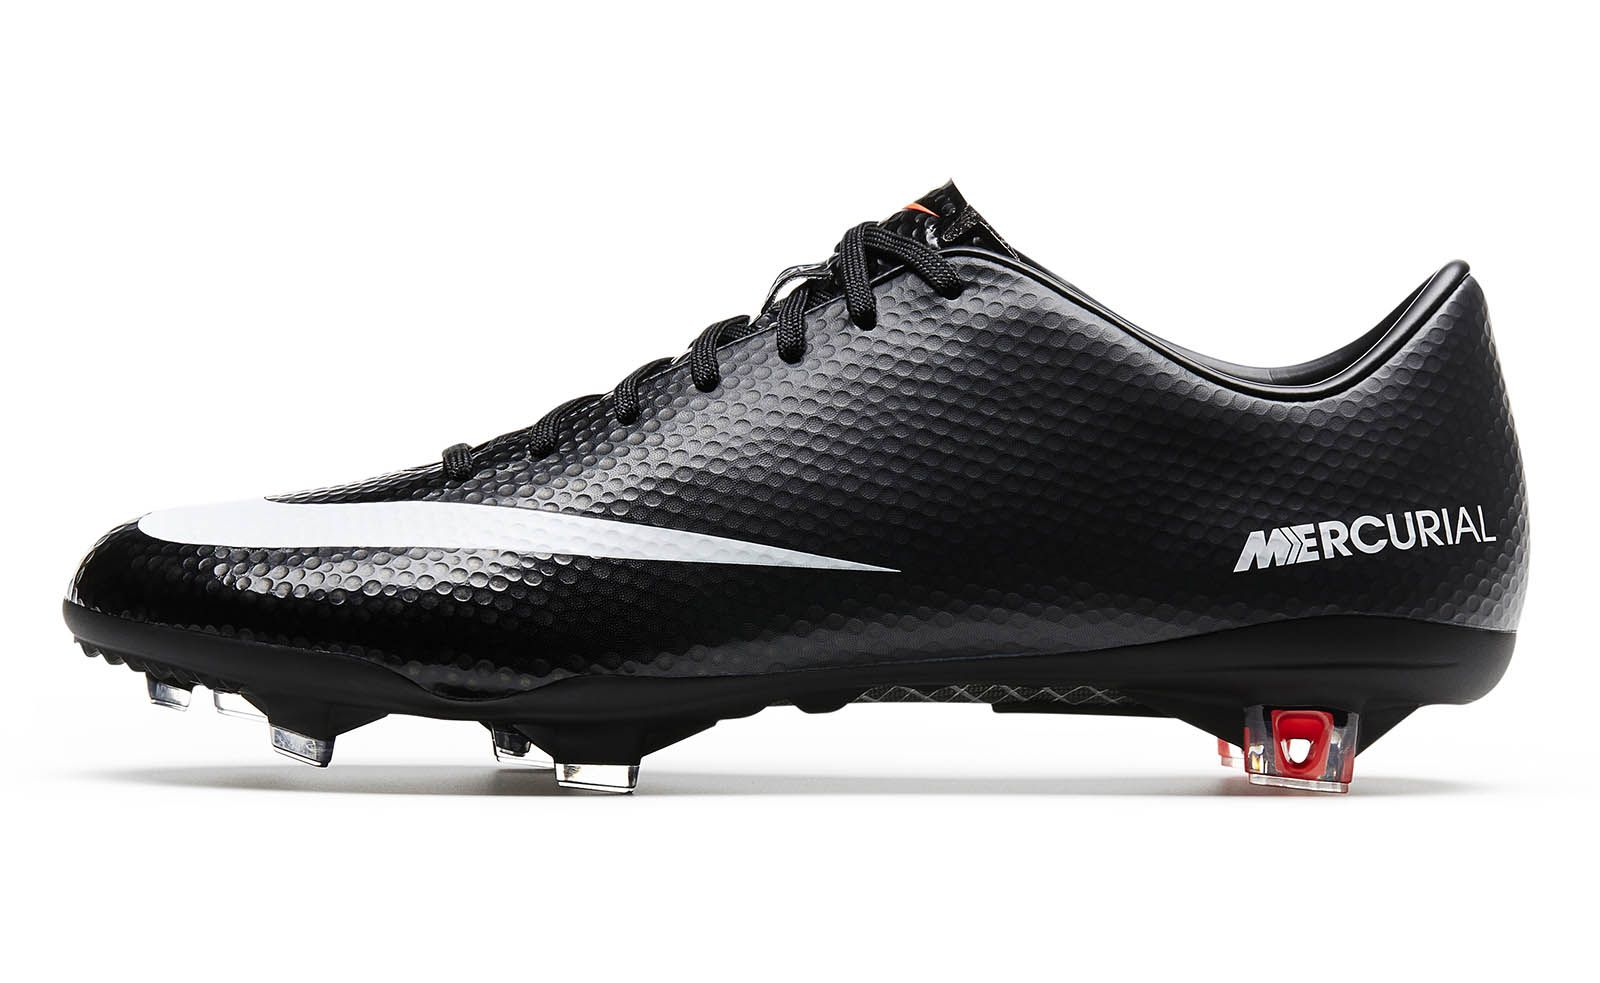 Nike Goes Classic with Black Football Boots: Football pitches have been  dominated by brightly colored boots for the last few years now.